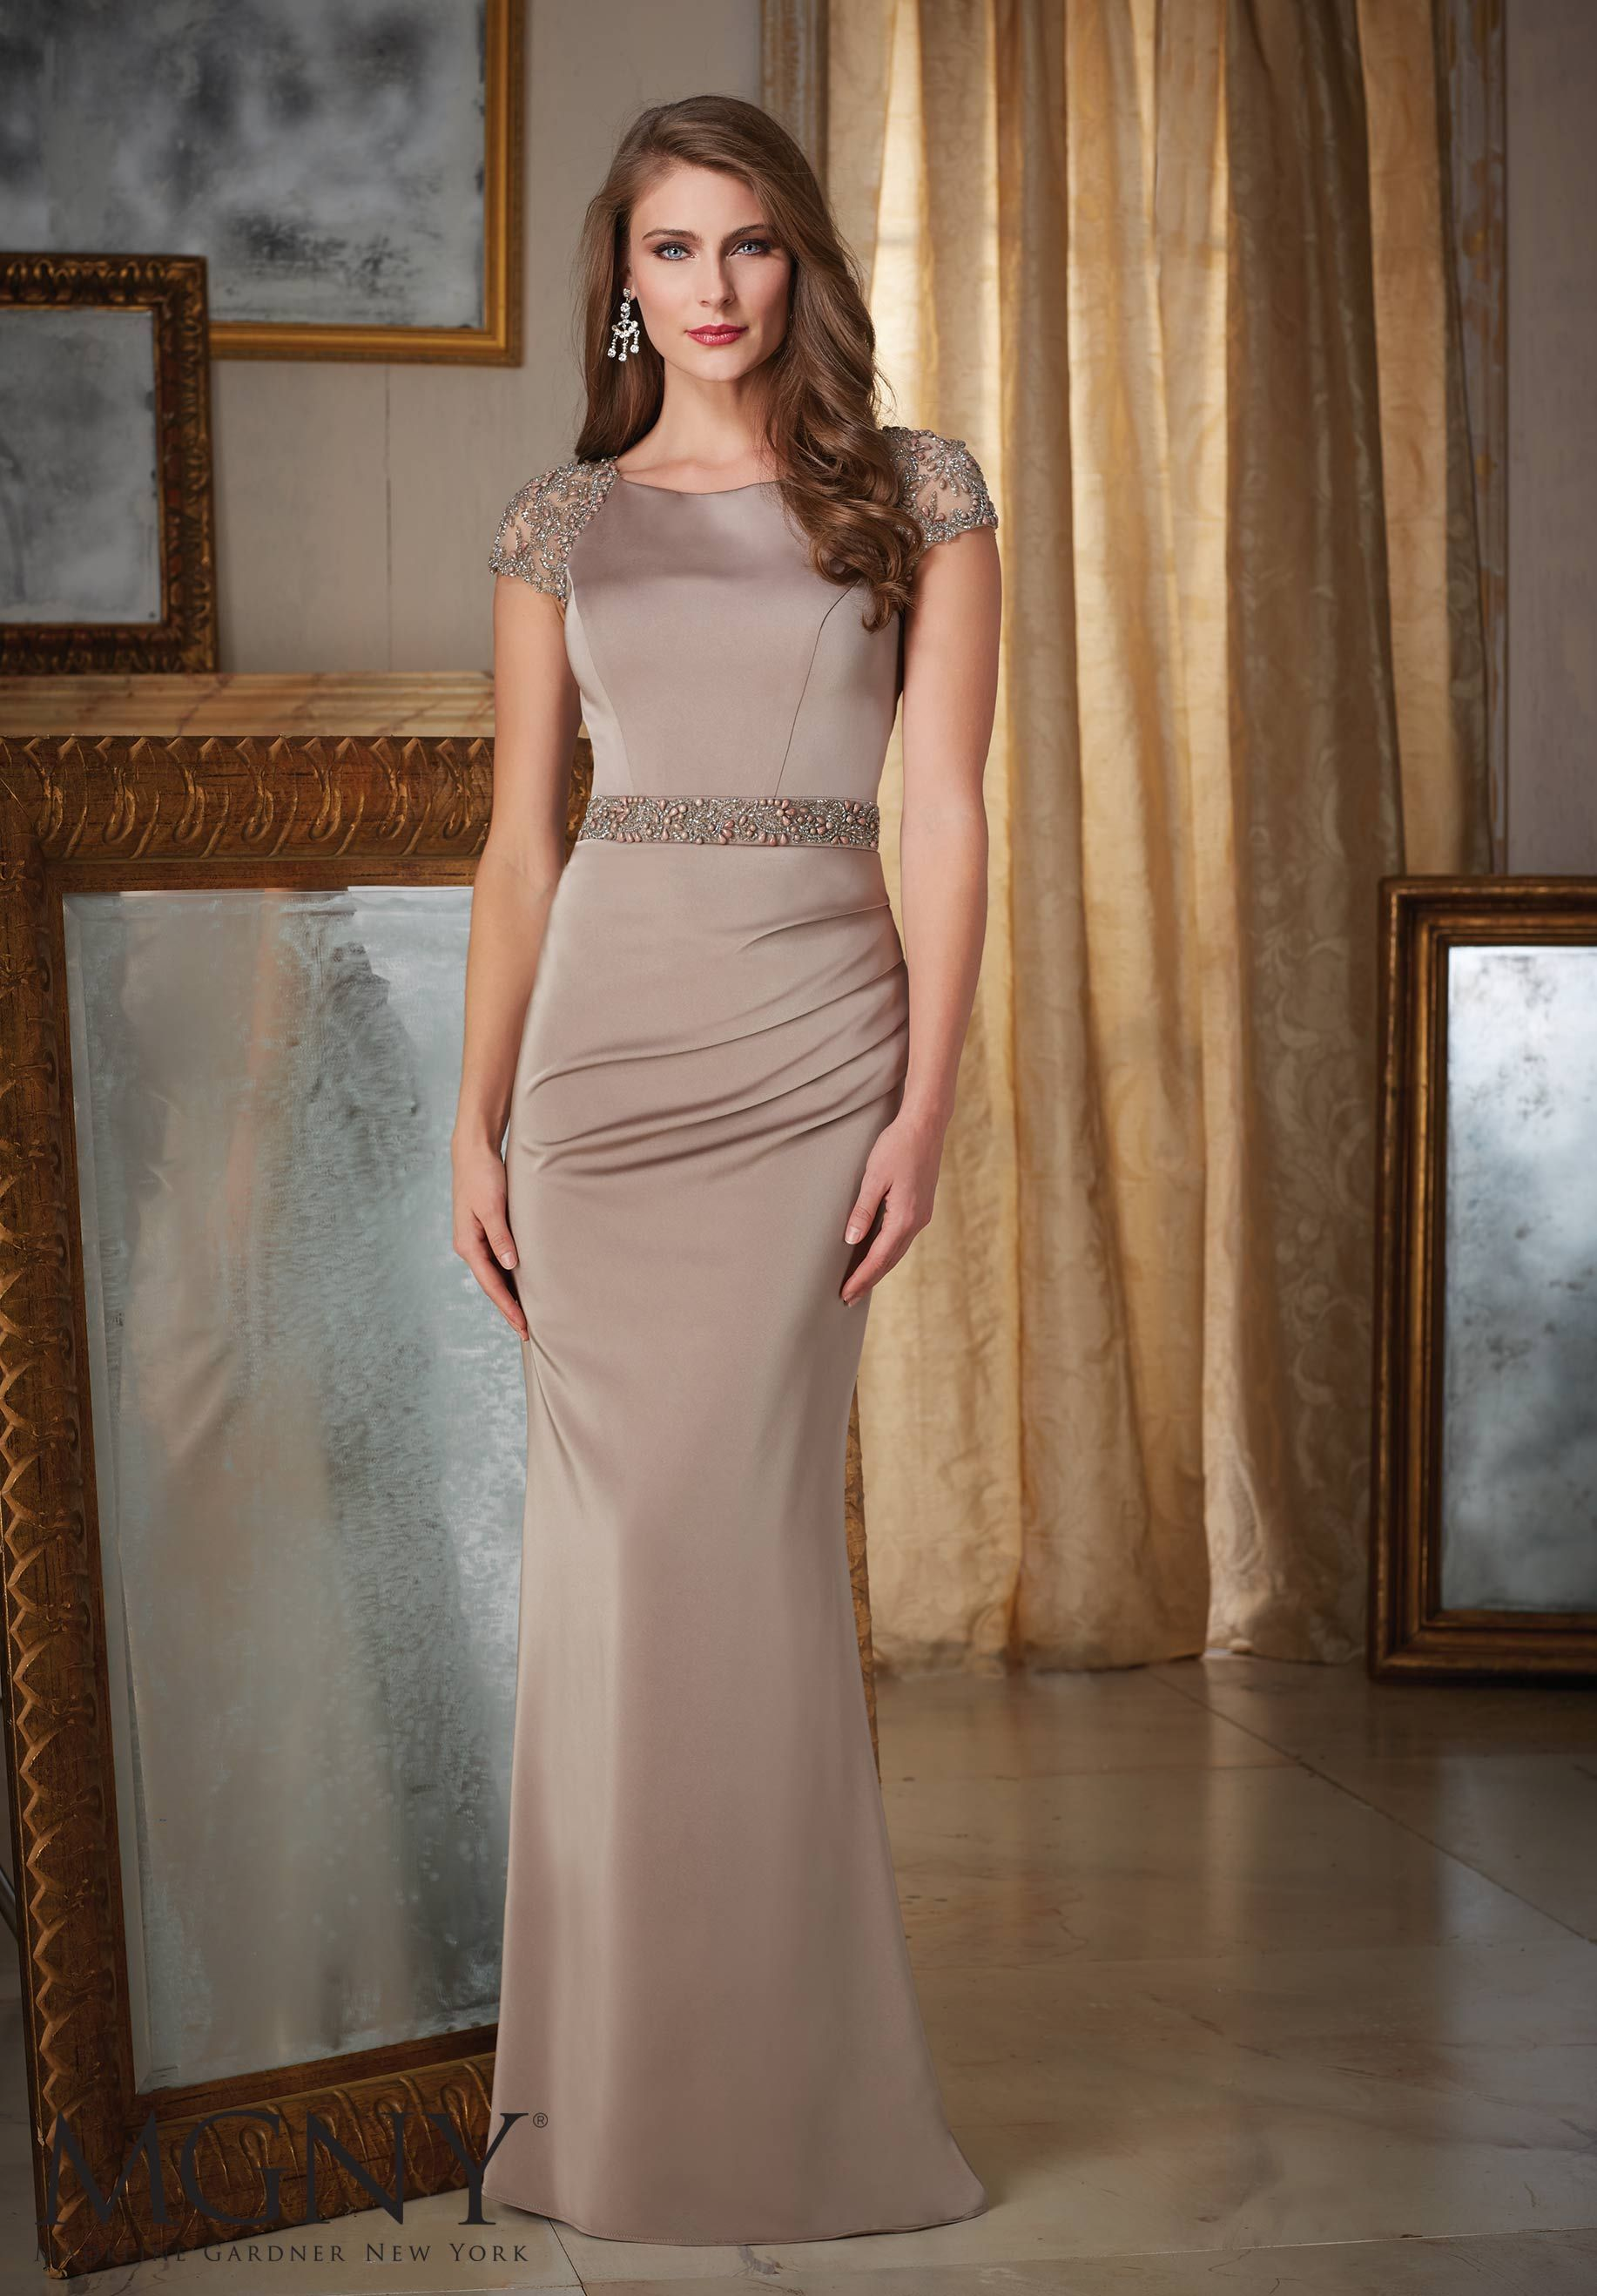 fd779cd250 Evening Gown 71426 Jeweled Beading on Silky Crepe